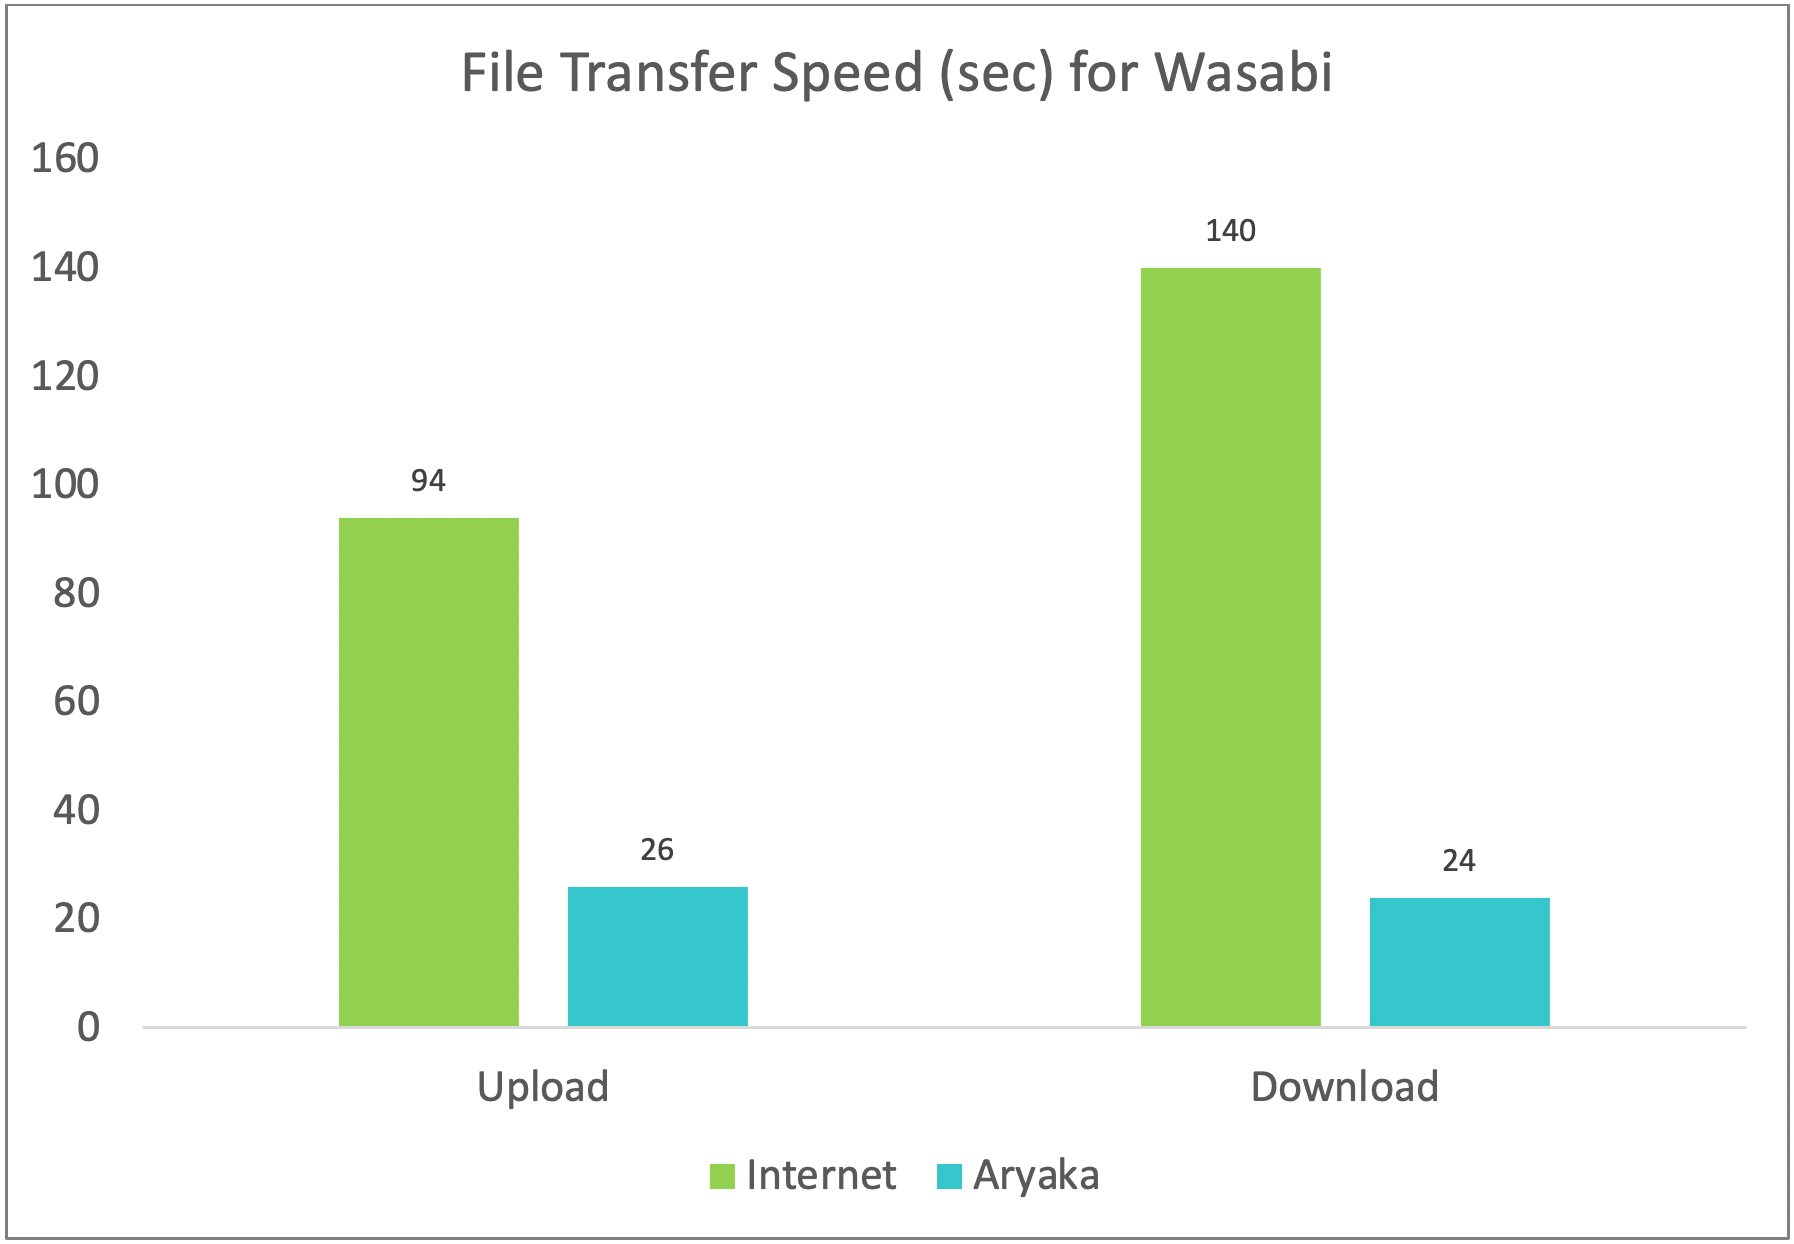 File Transfer Speed for Wasabi